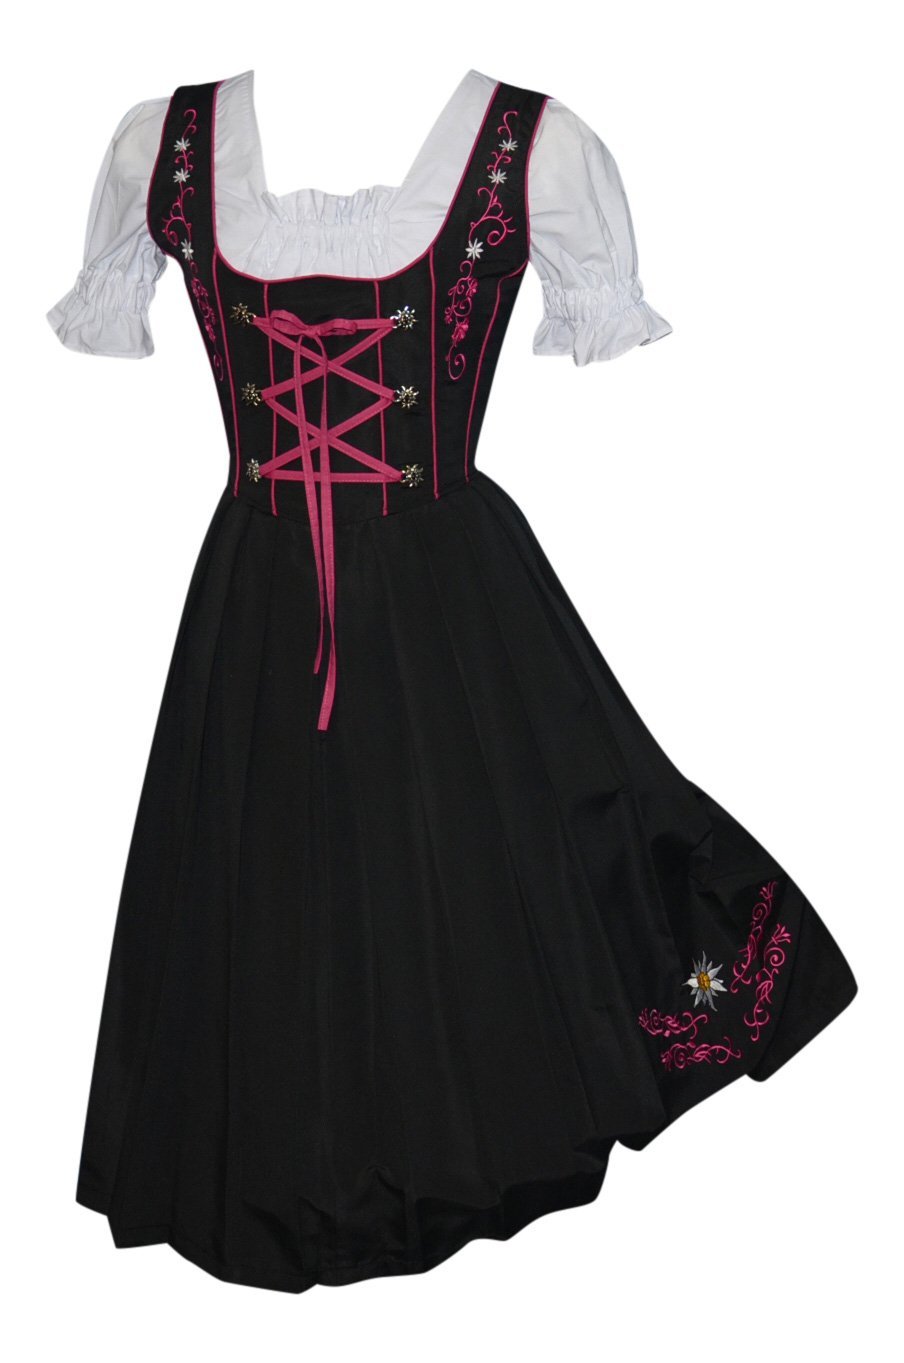 3-Piece Long German Party Oktoberfest Dirndl Dress Black & Pink (14) by Edelweiss Creek (Image #2)